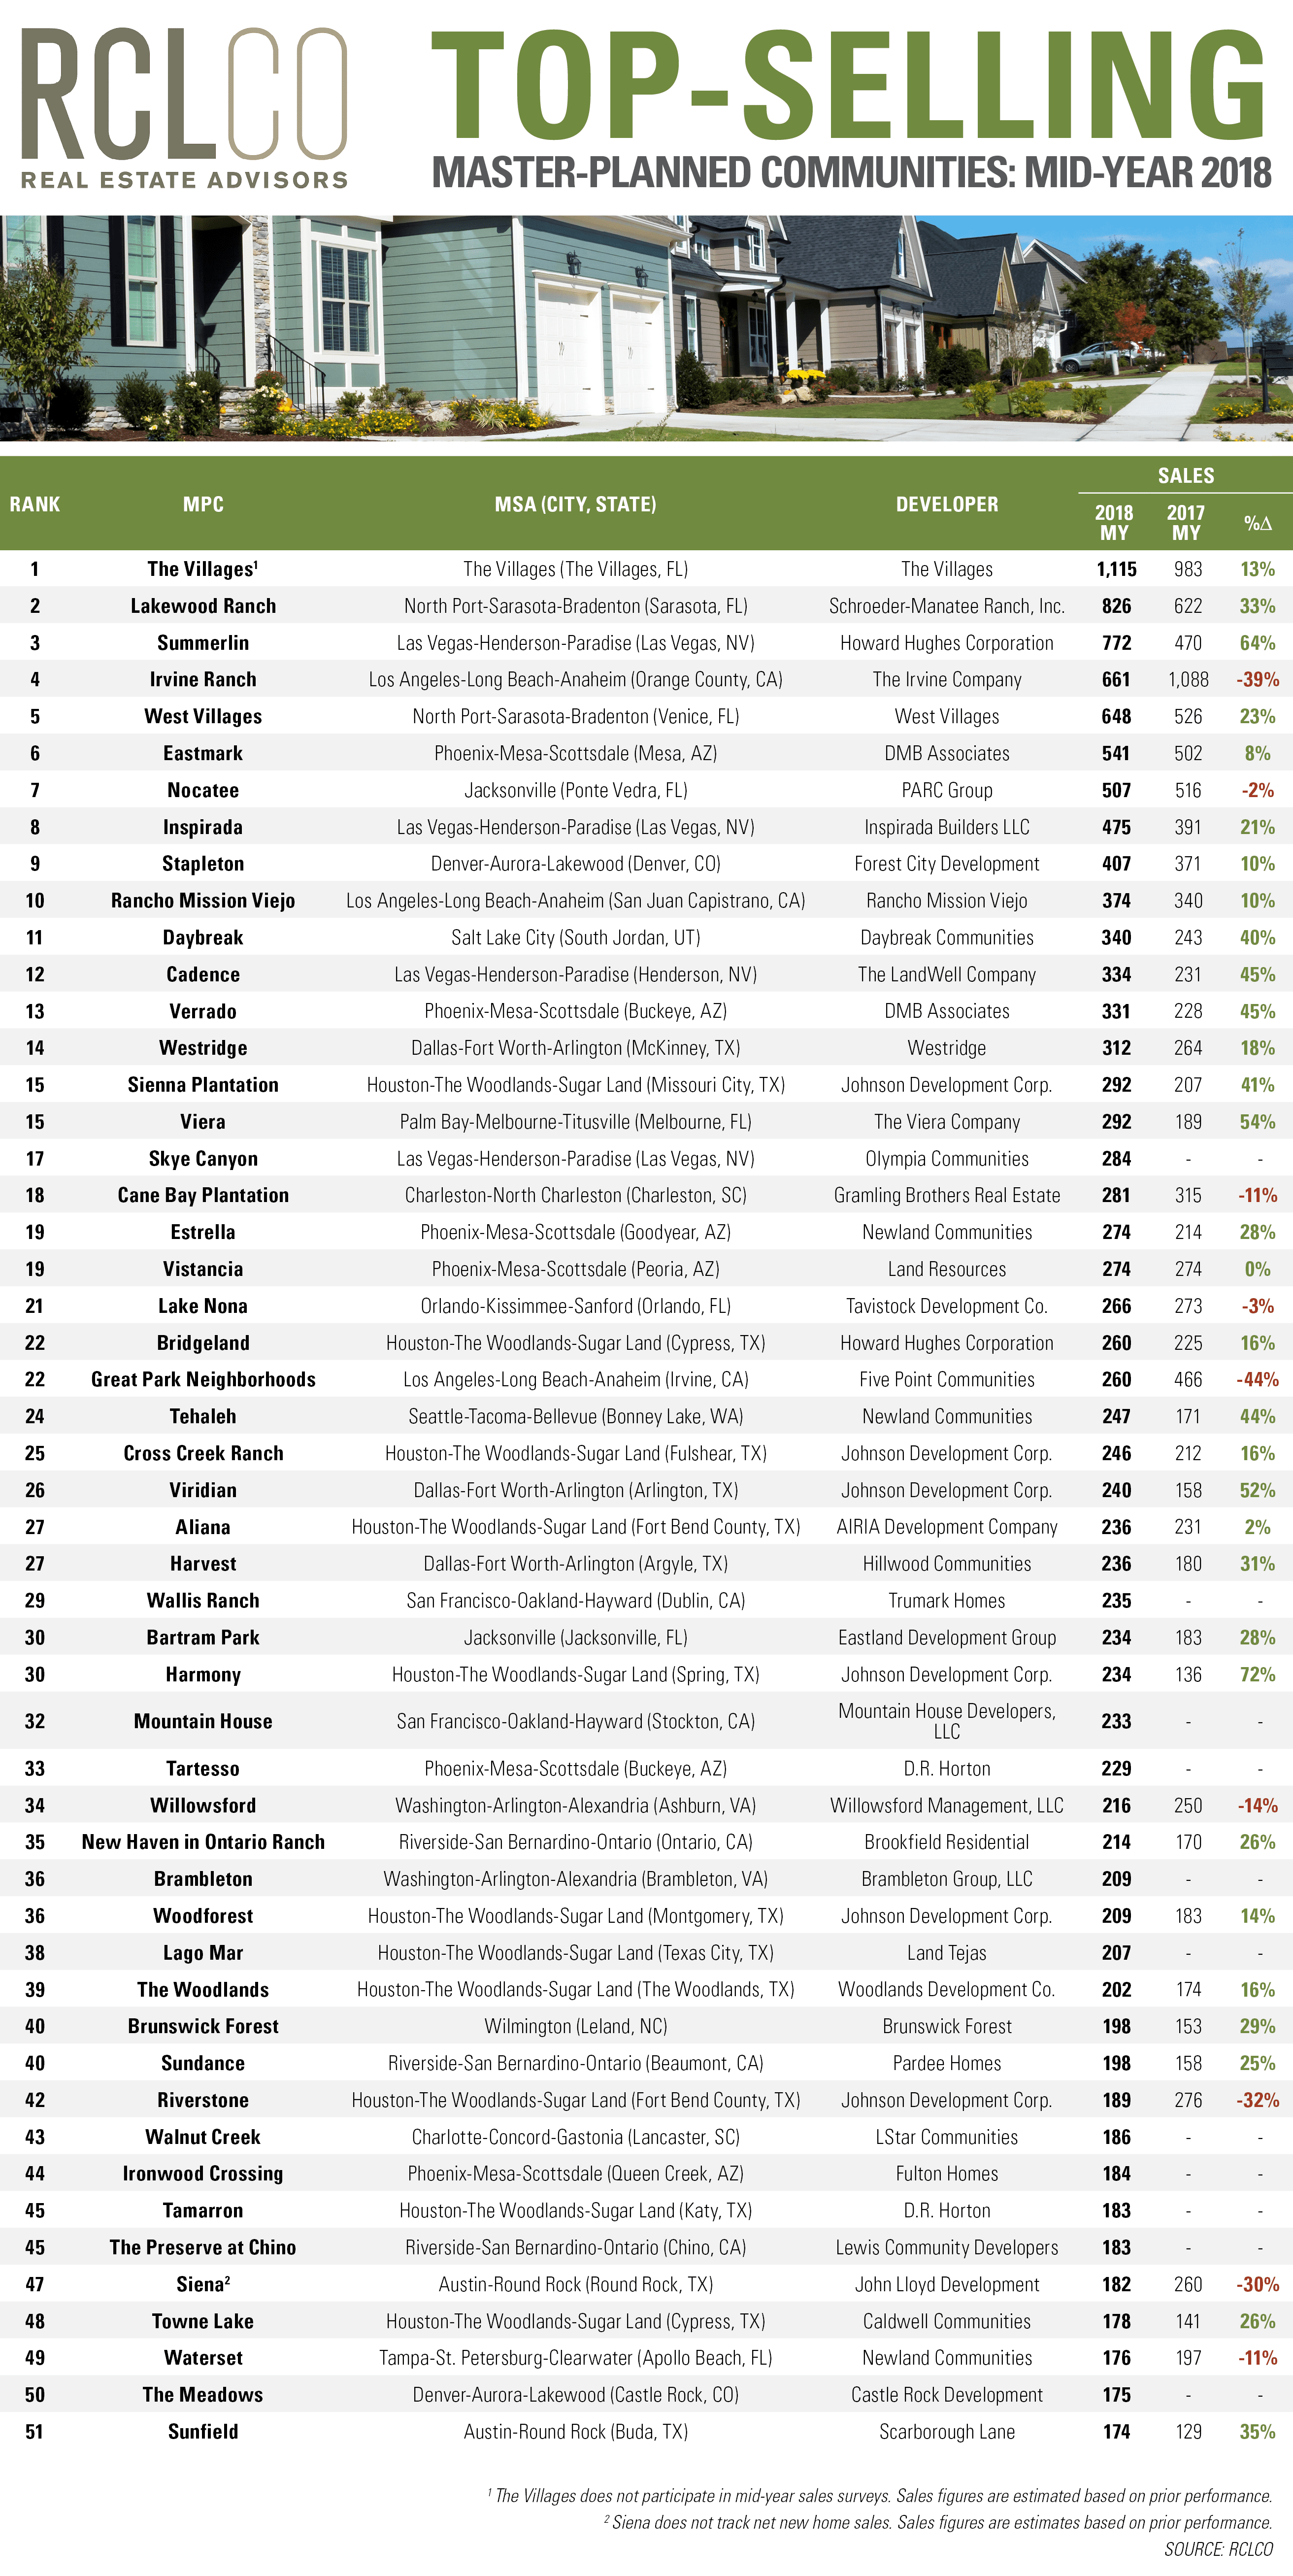 Top-Selling Master-Planned Communities 2018 Mid-Year